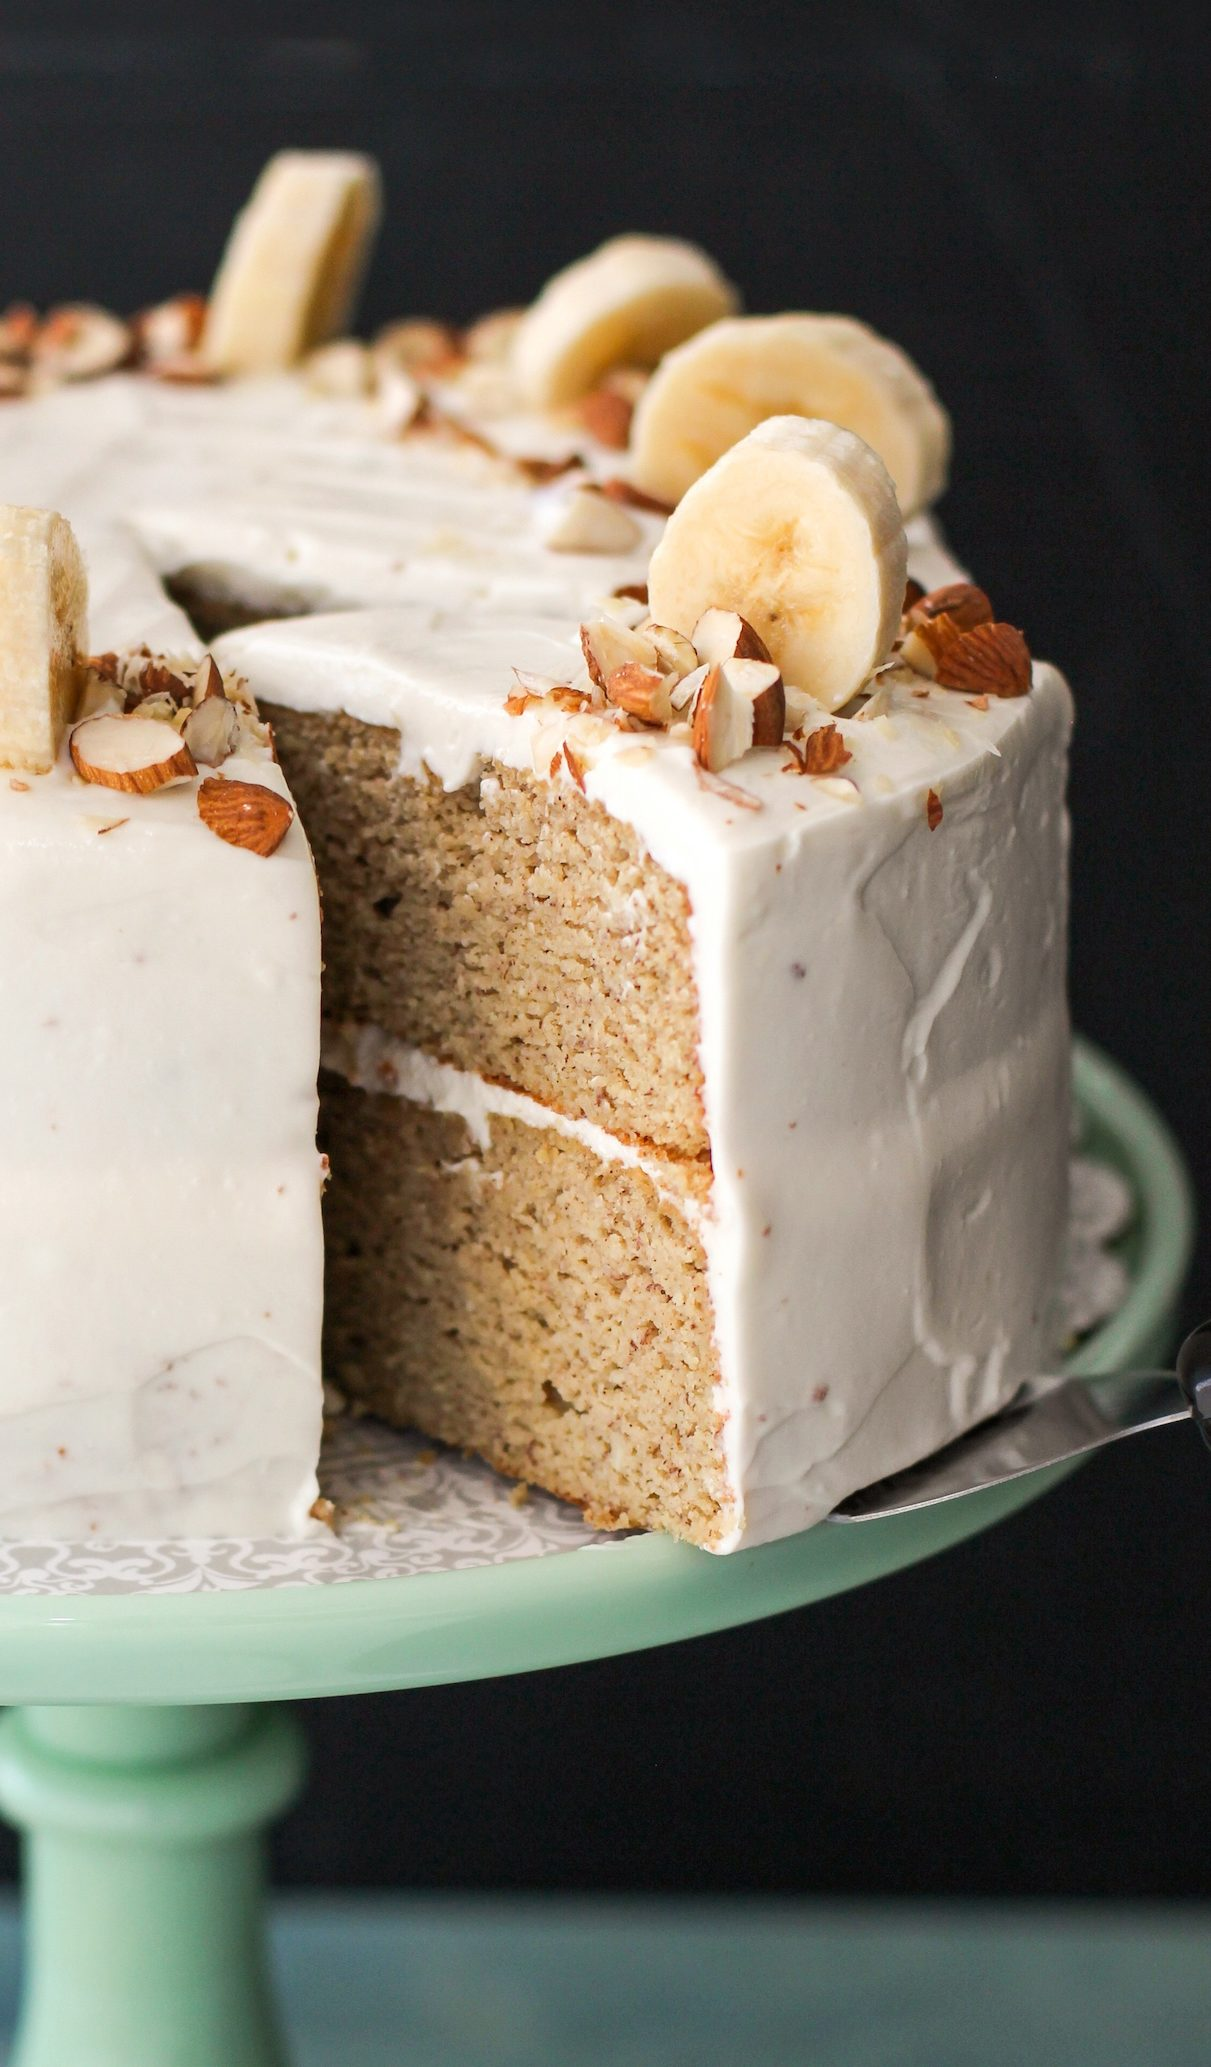 Gluten Free Healthy Banana Cake With Cream Cheese Frosting Recipe